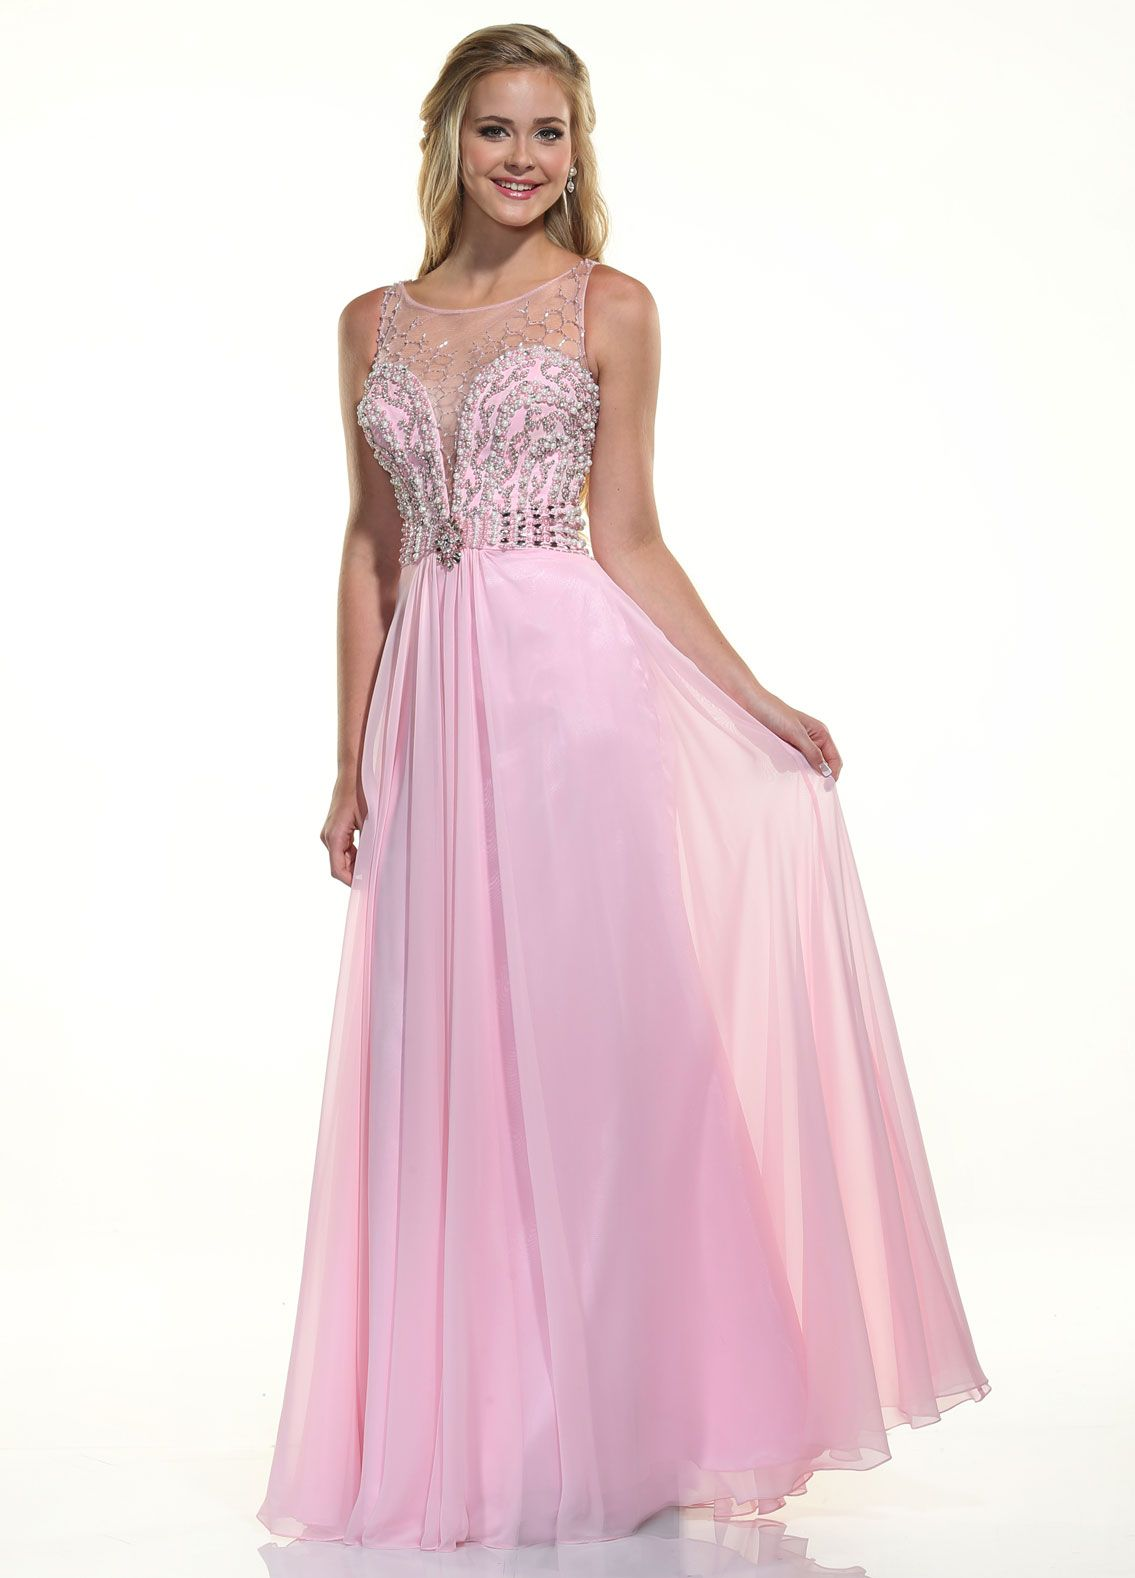 DE 35737 Pink size 6   Xcite/ Xtreme/ Disney Enchanted gowns in ...